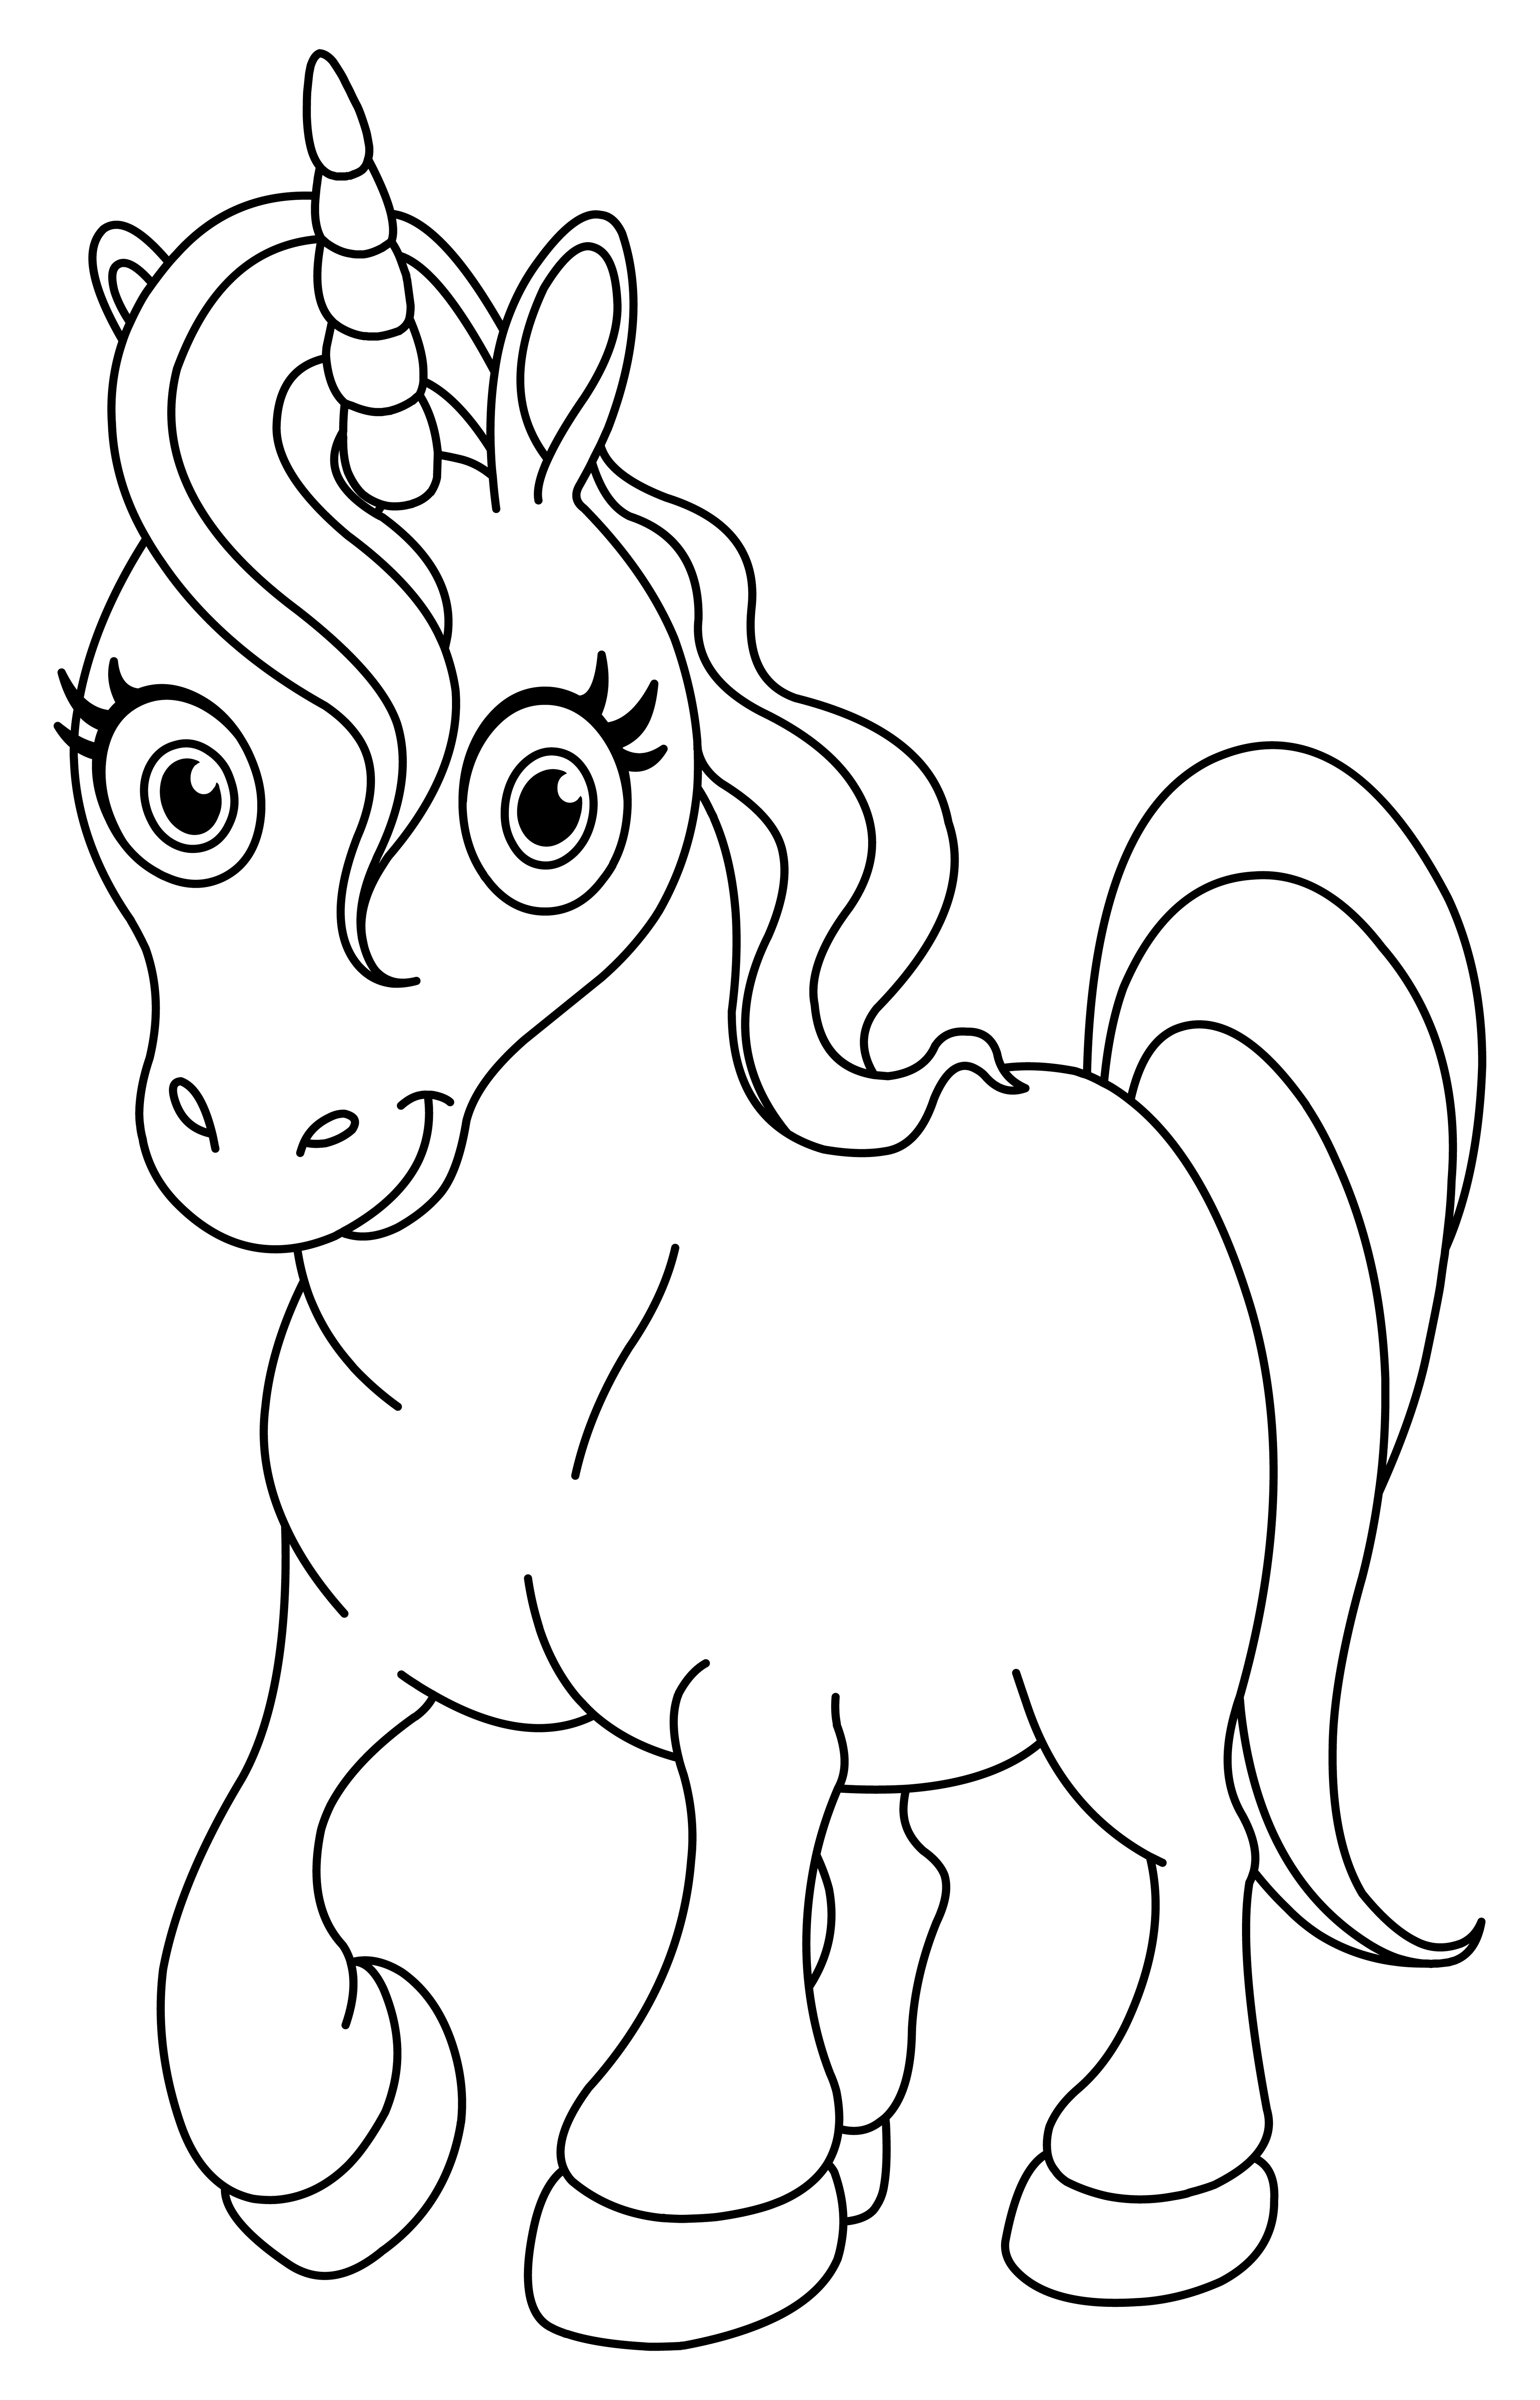 outlined_cute_unicorn.jpg